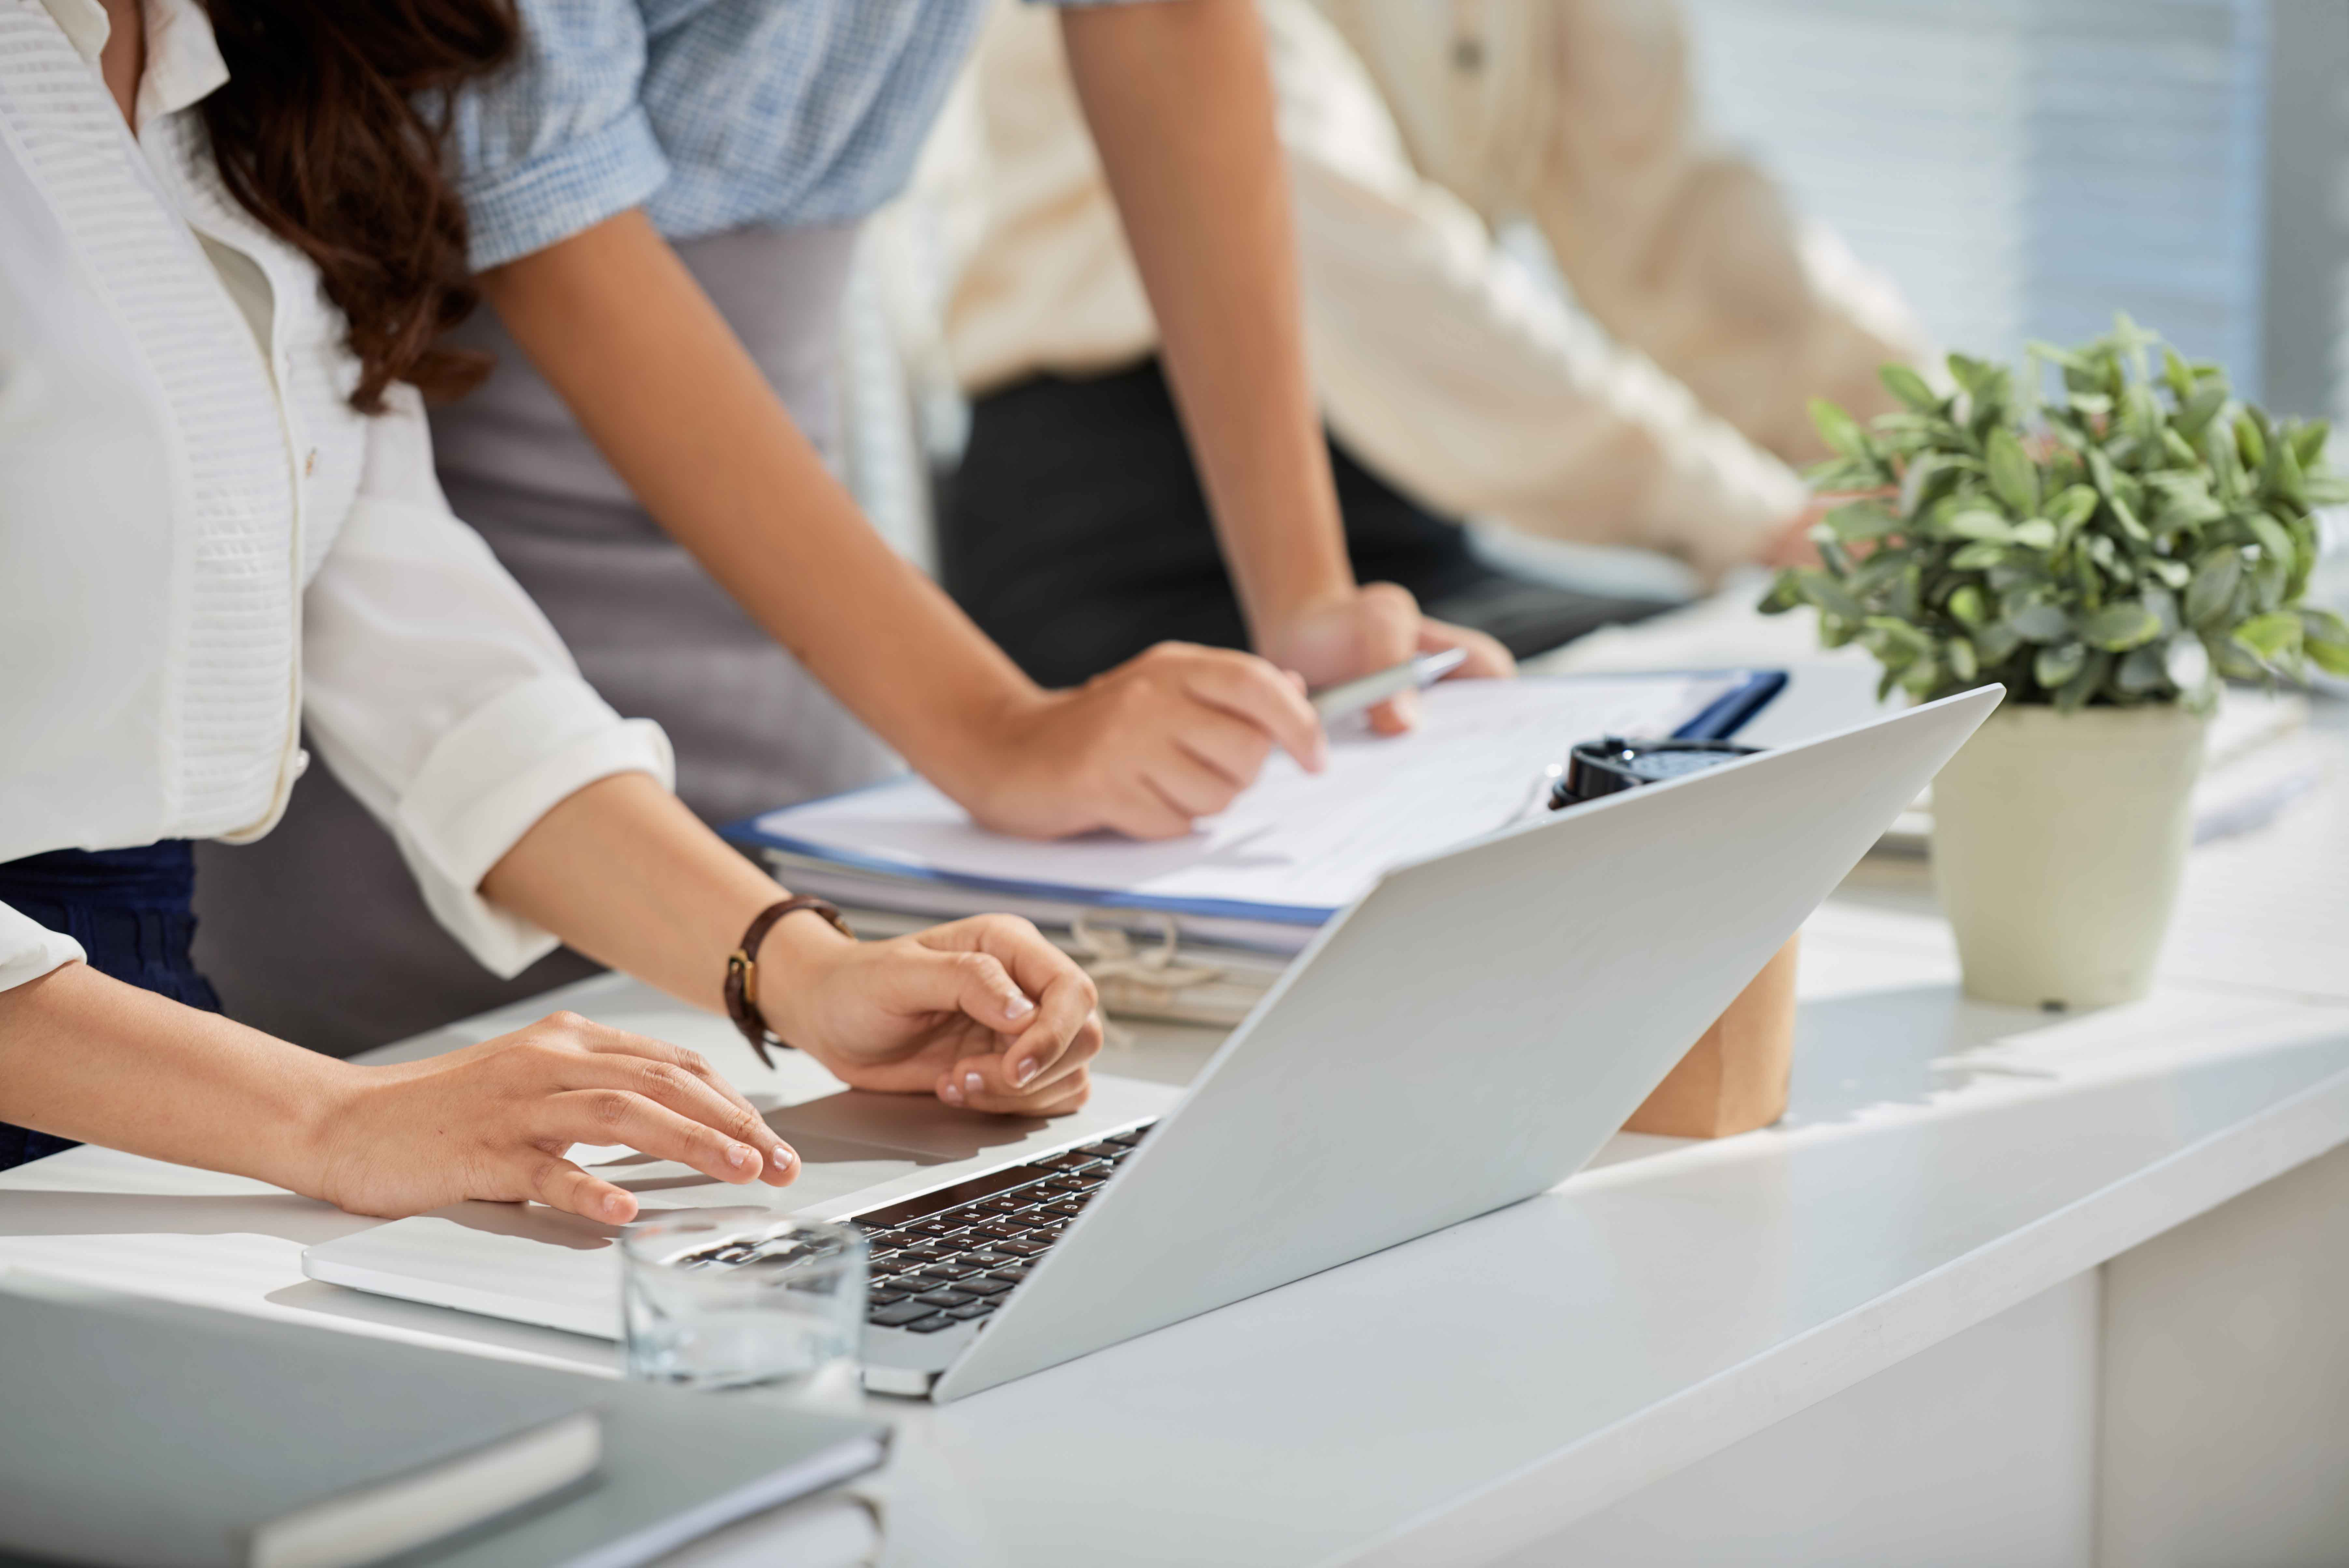 Cropped image of business ladies reading e-mails on laptop screen